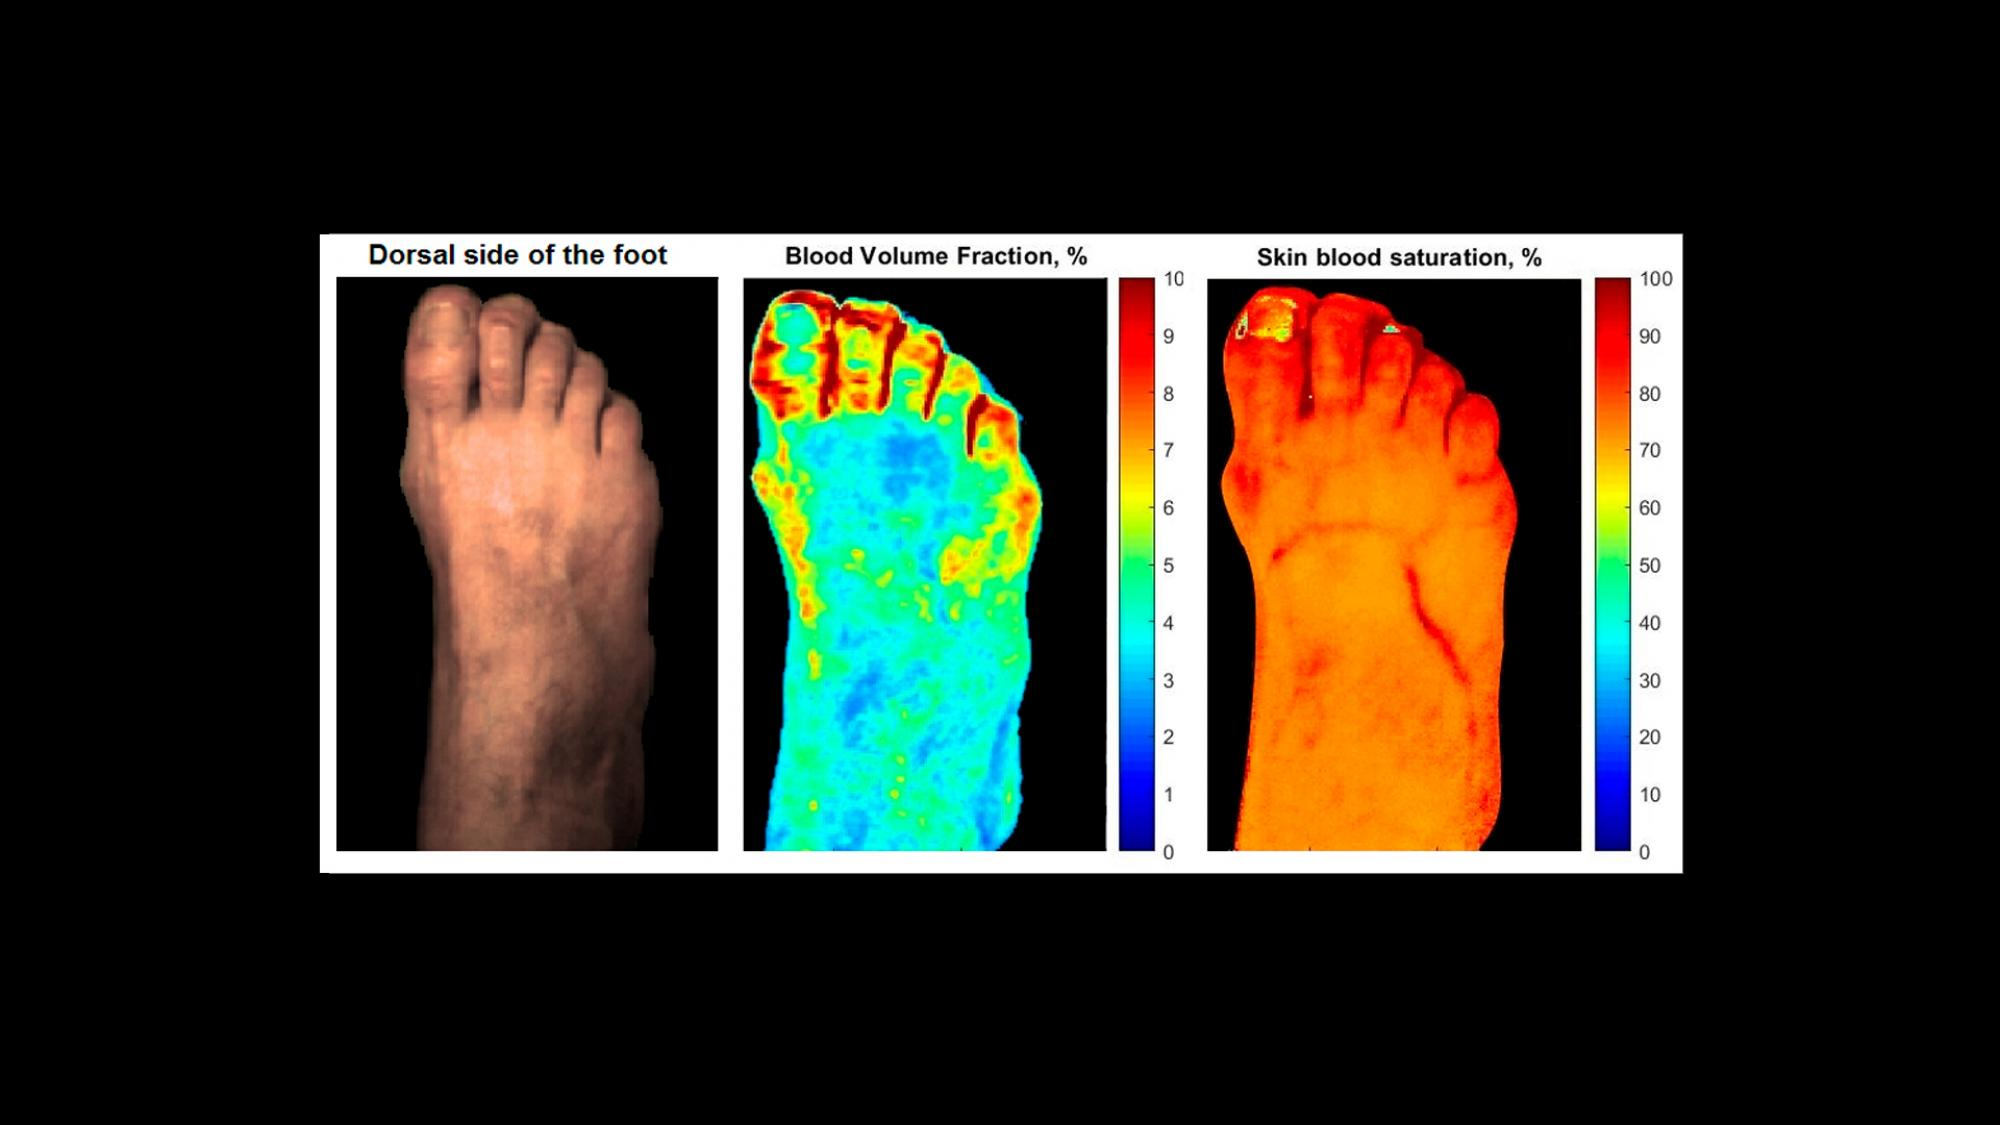 New method reveals the skin complications of diabetes